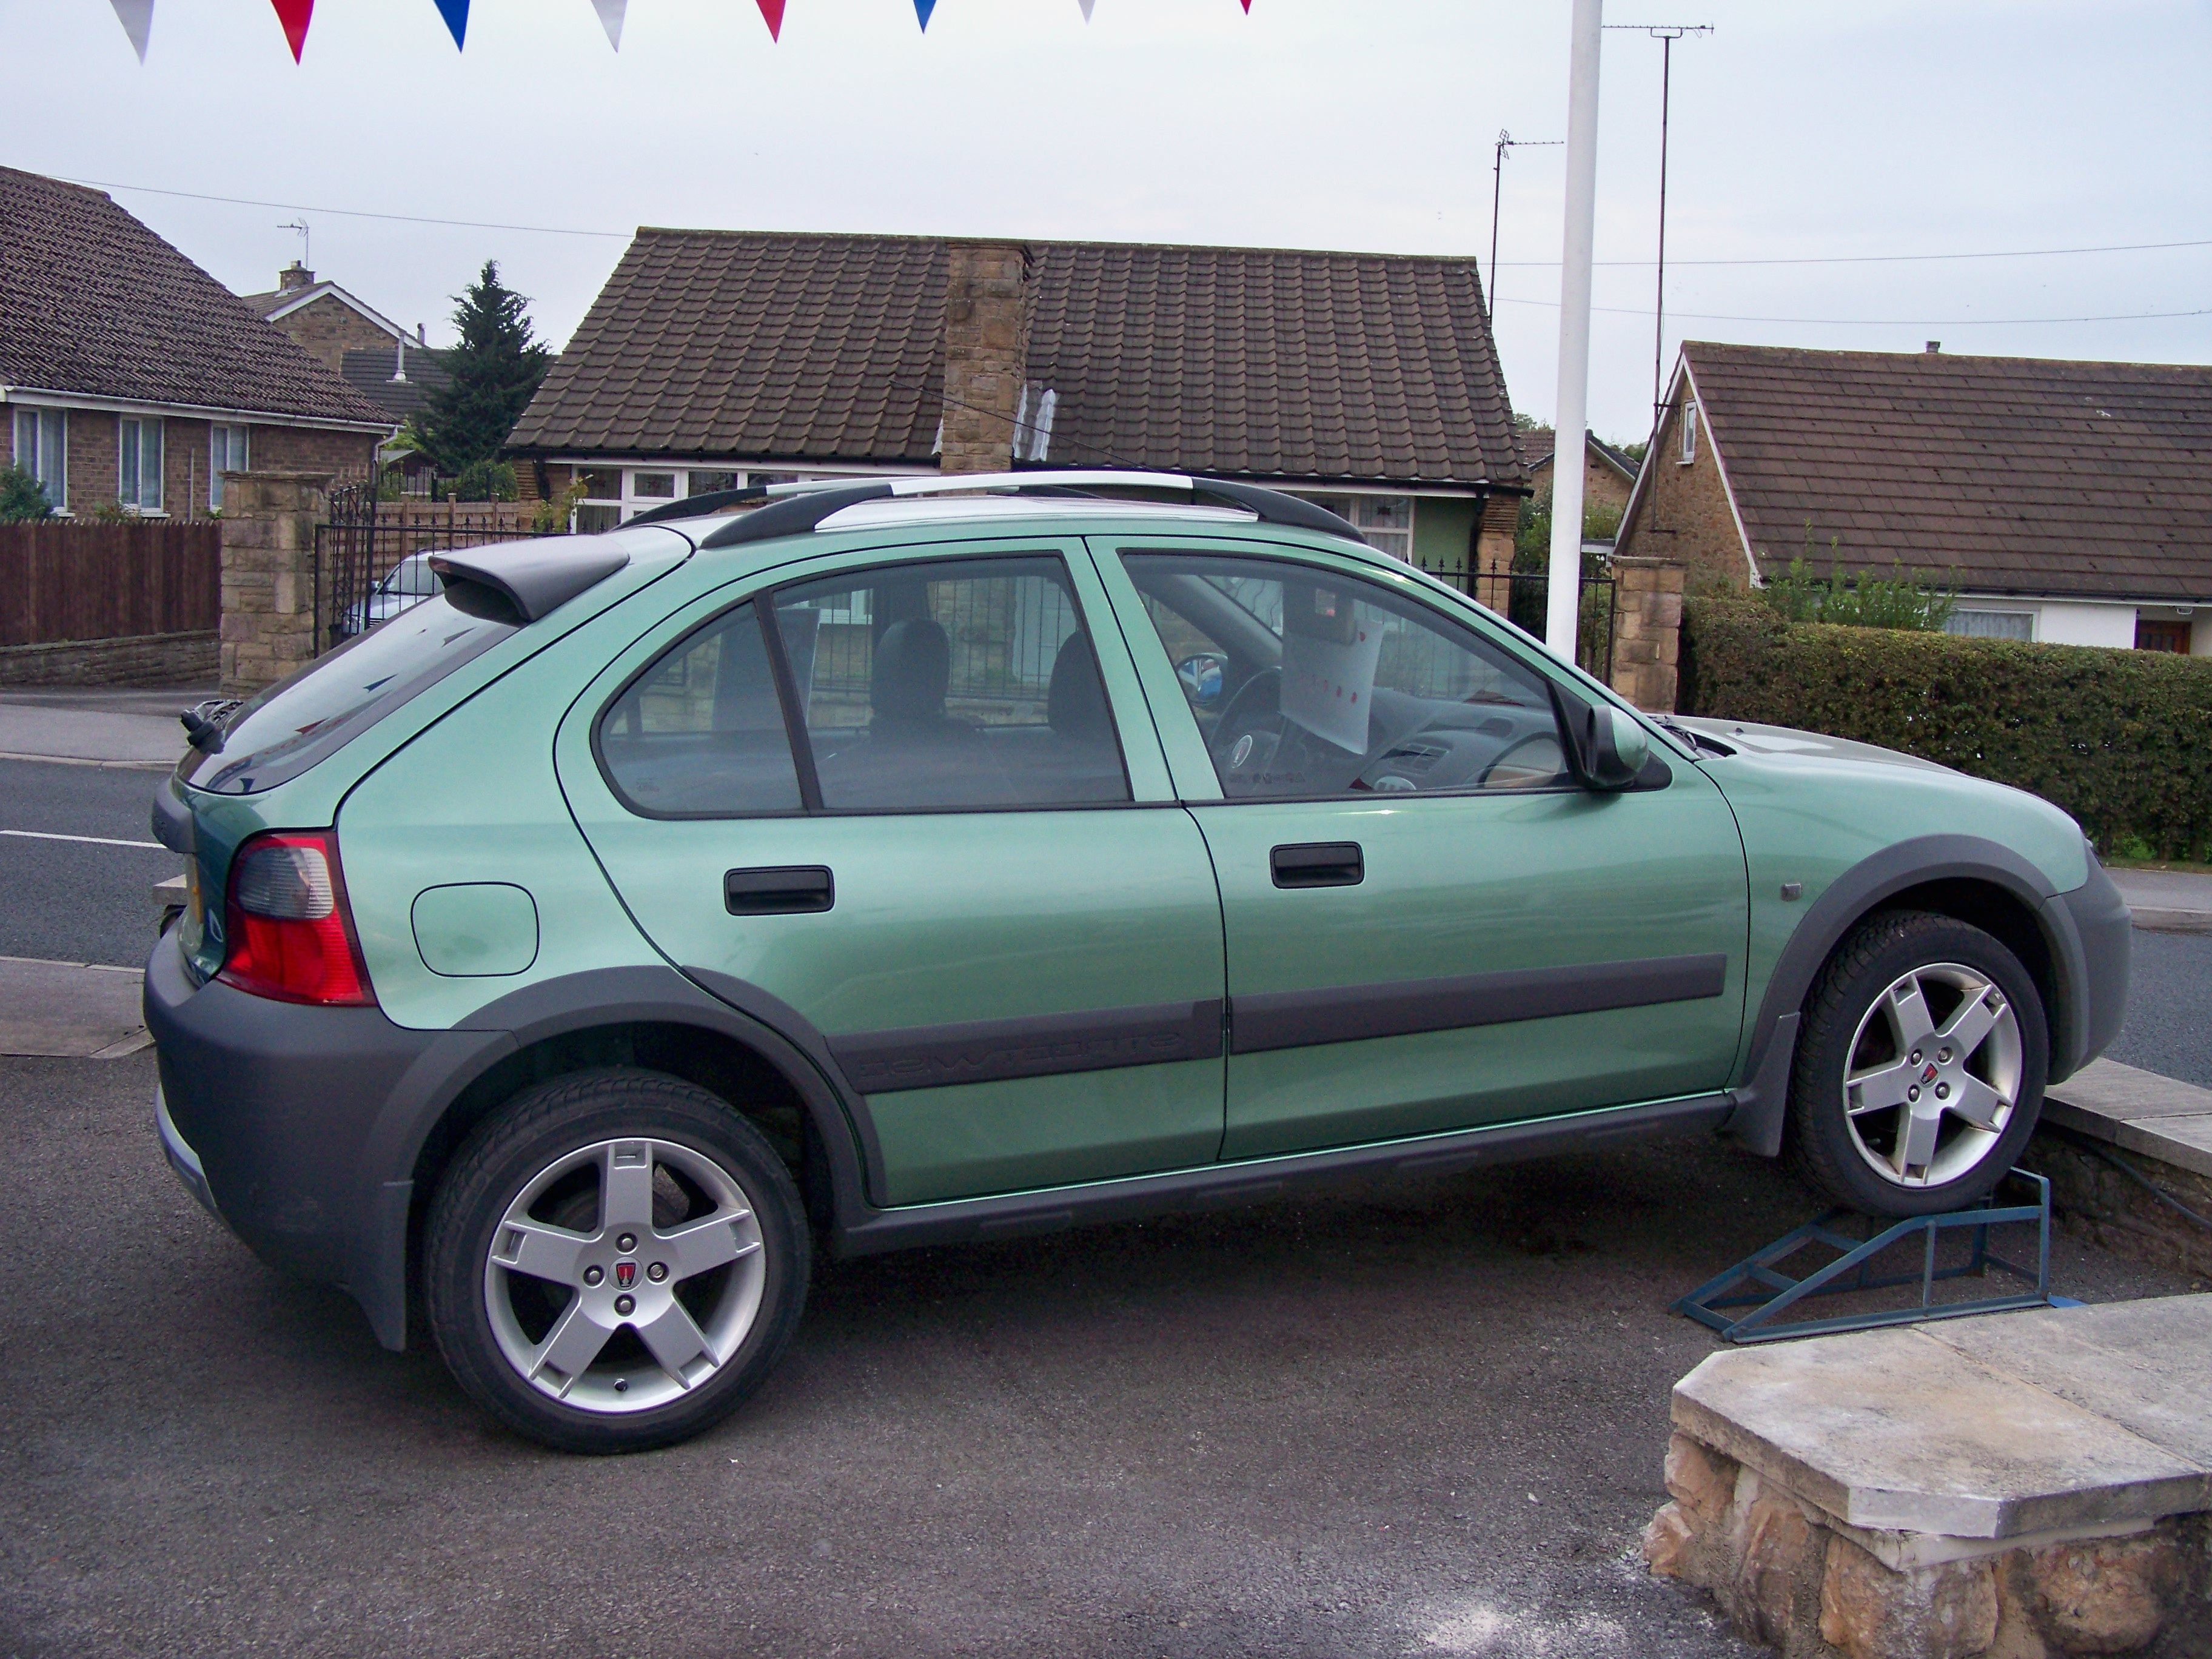 2003 Rover Streetwise #4